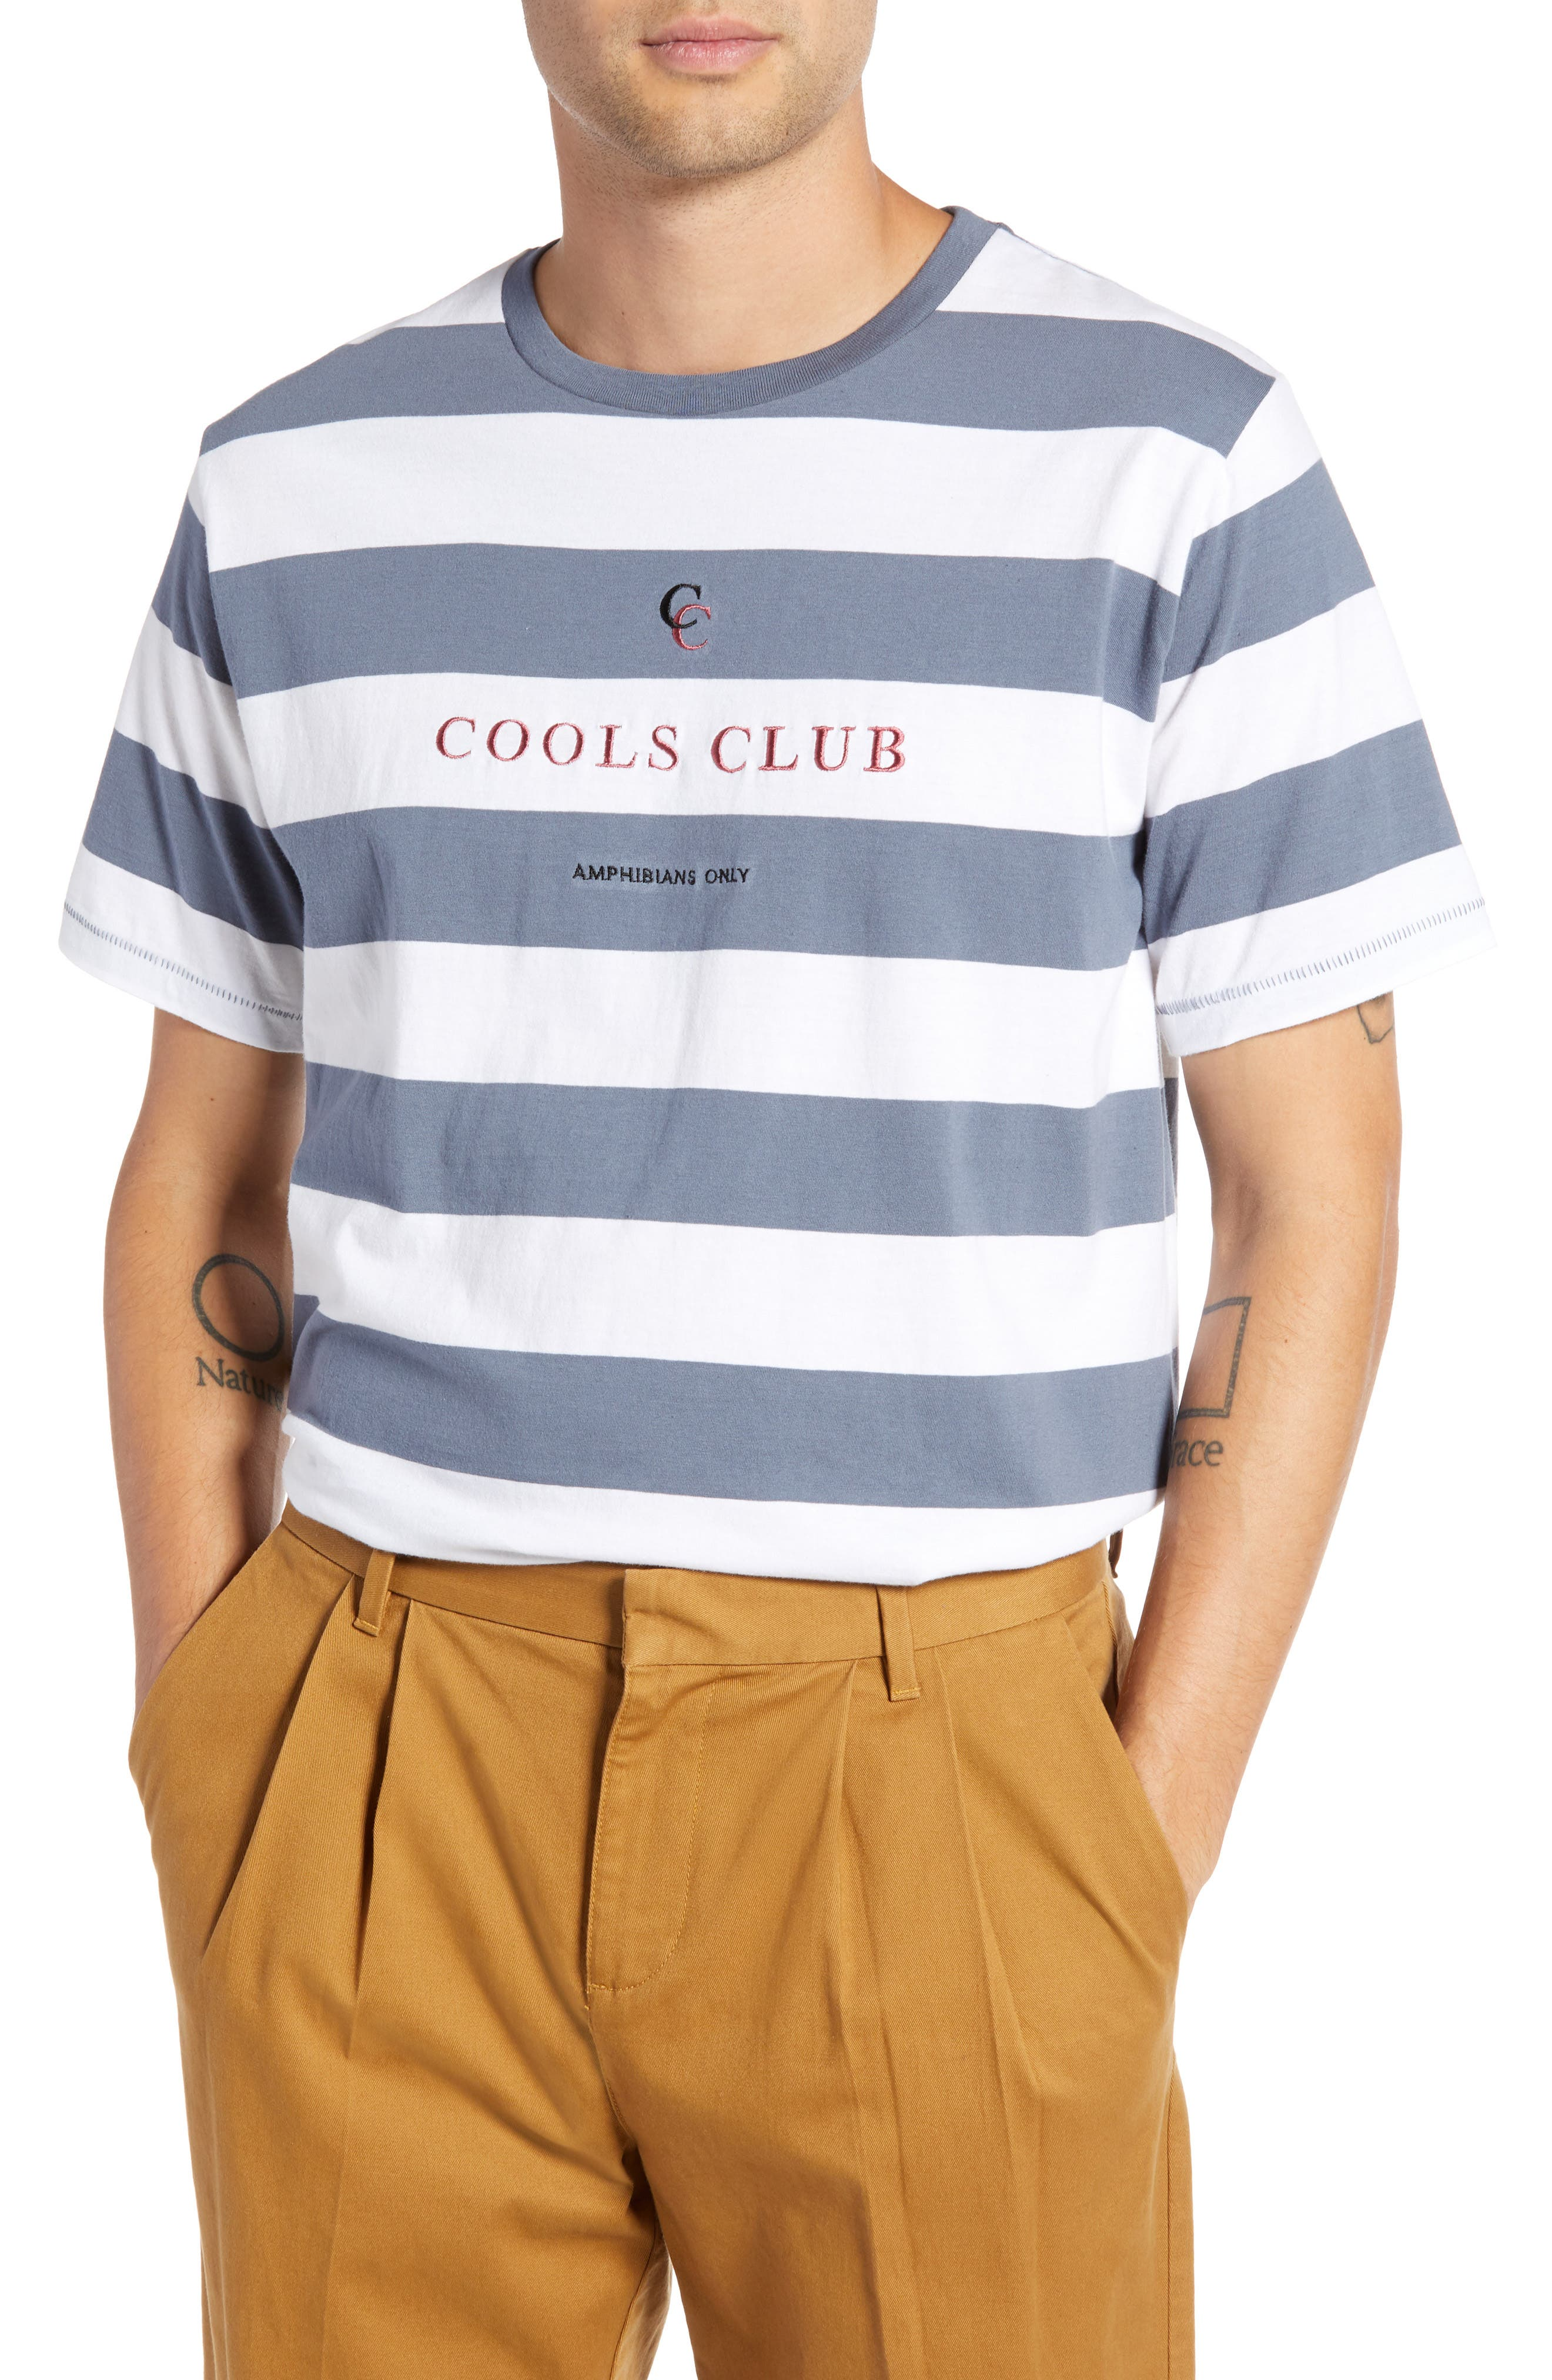 BARNEY COOLS Embroidered Cools Club Stripe T-Shirt in Navy Stripe